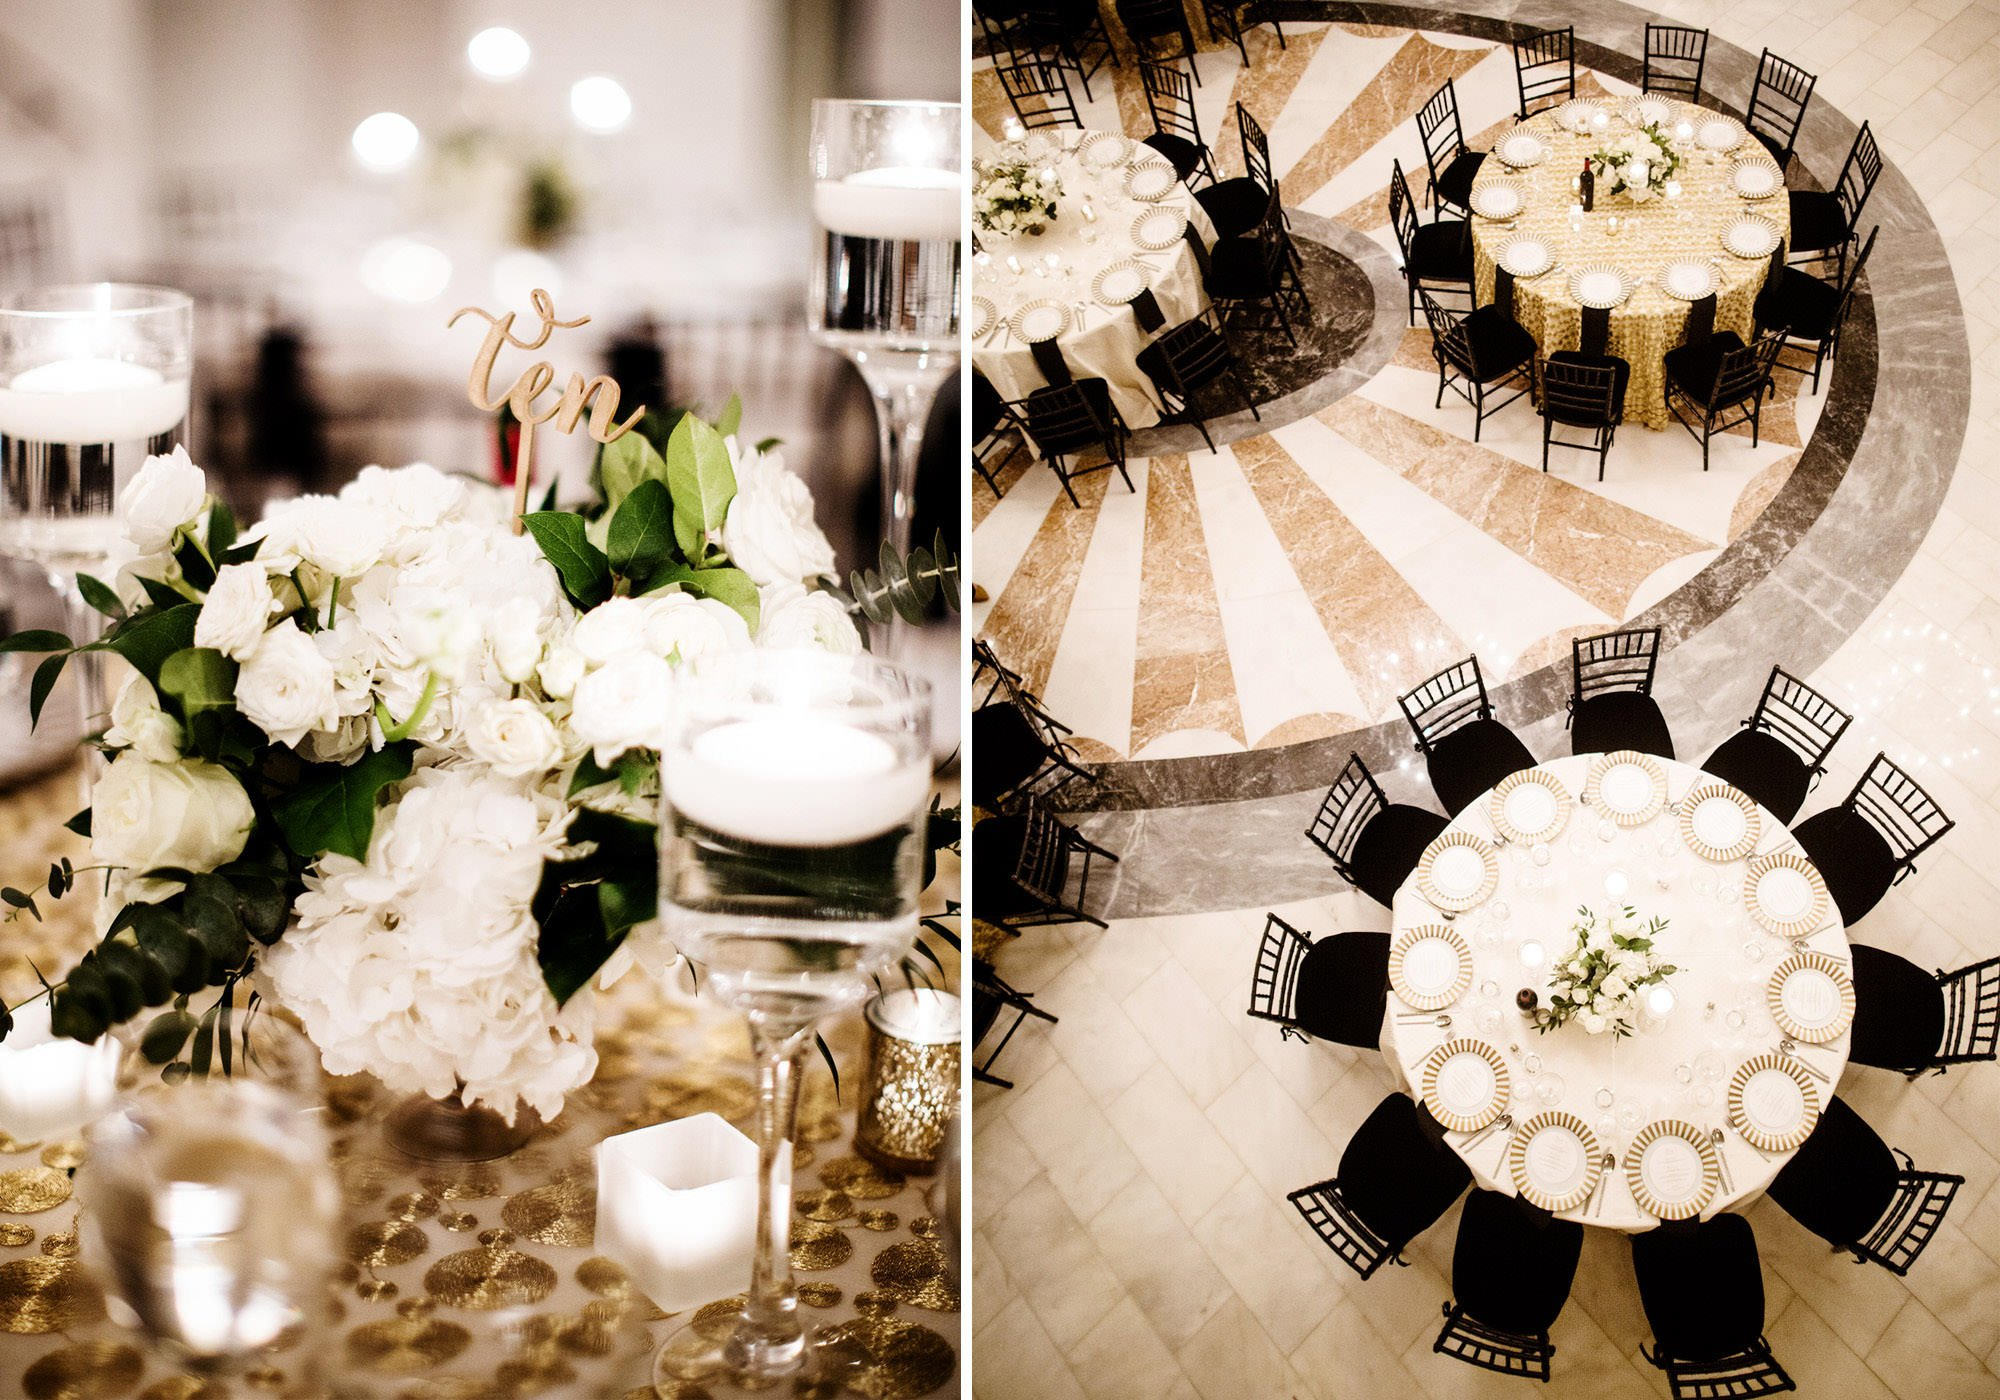 Florals and Table Settings at this NMWA wedding.